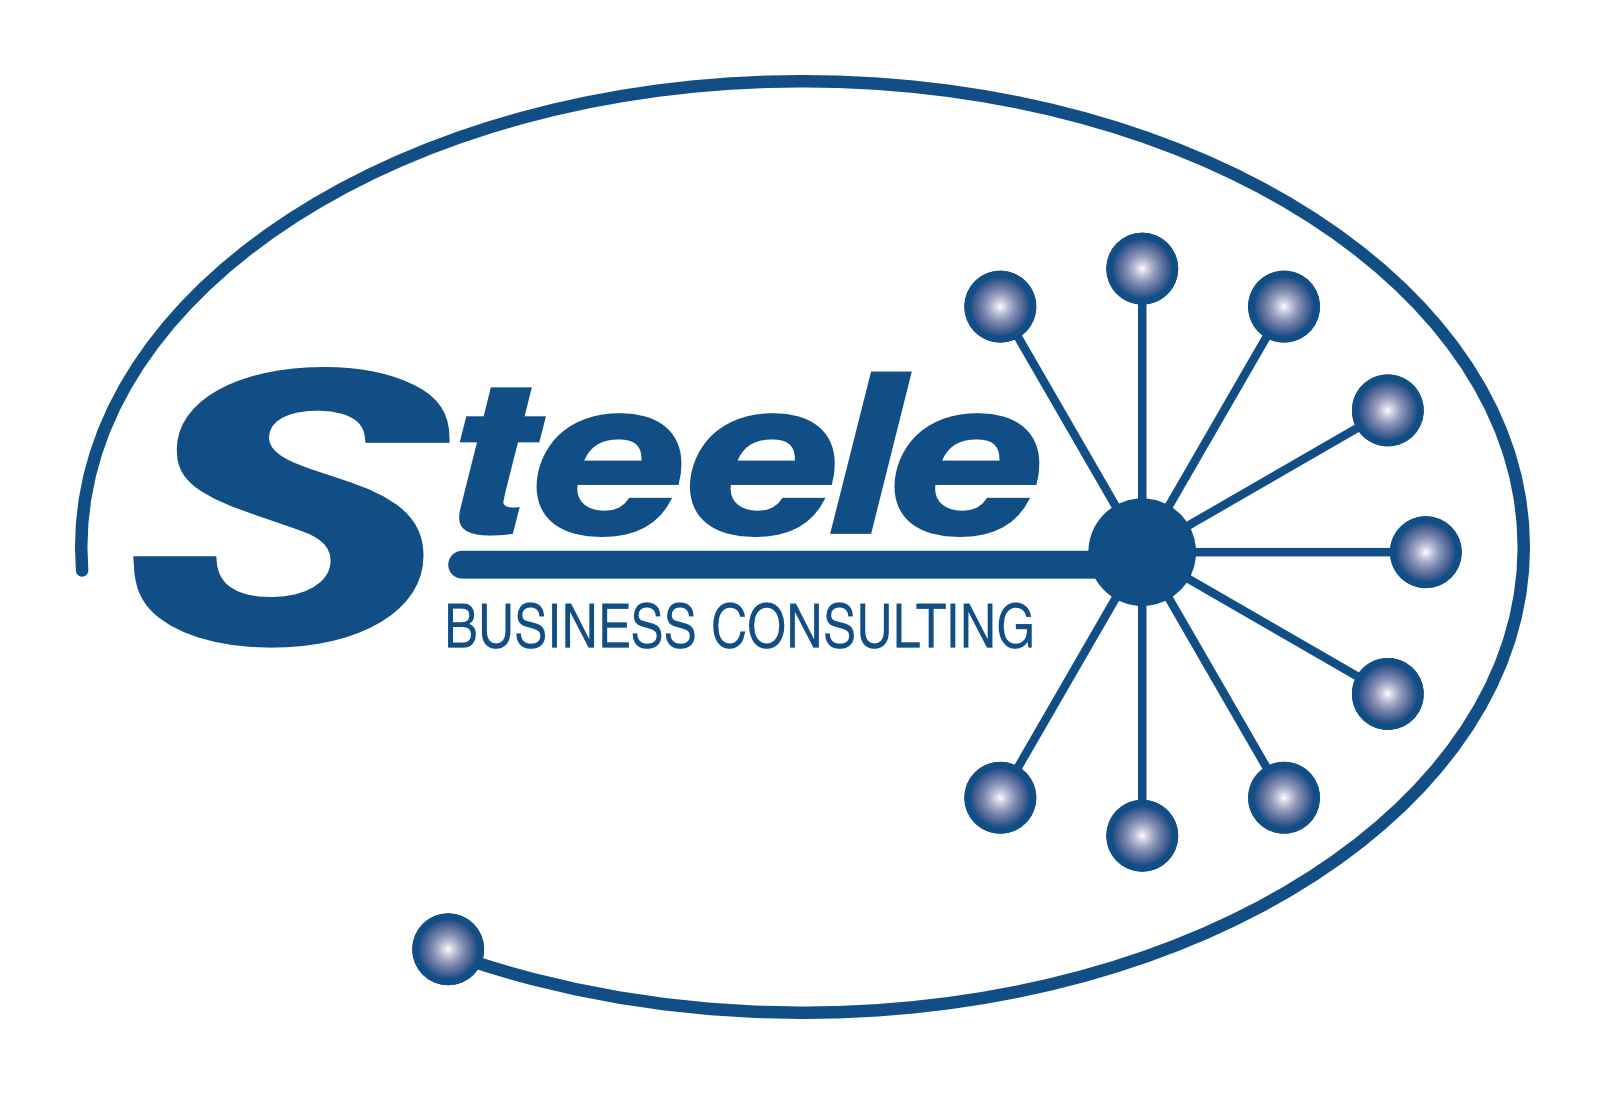 Steele Business Consulting